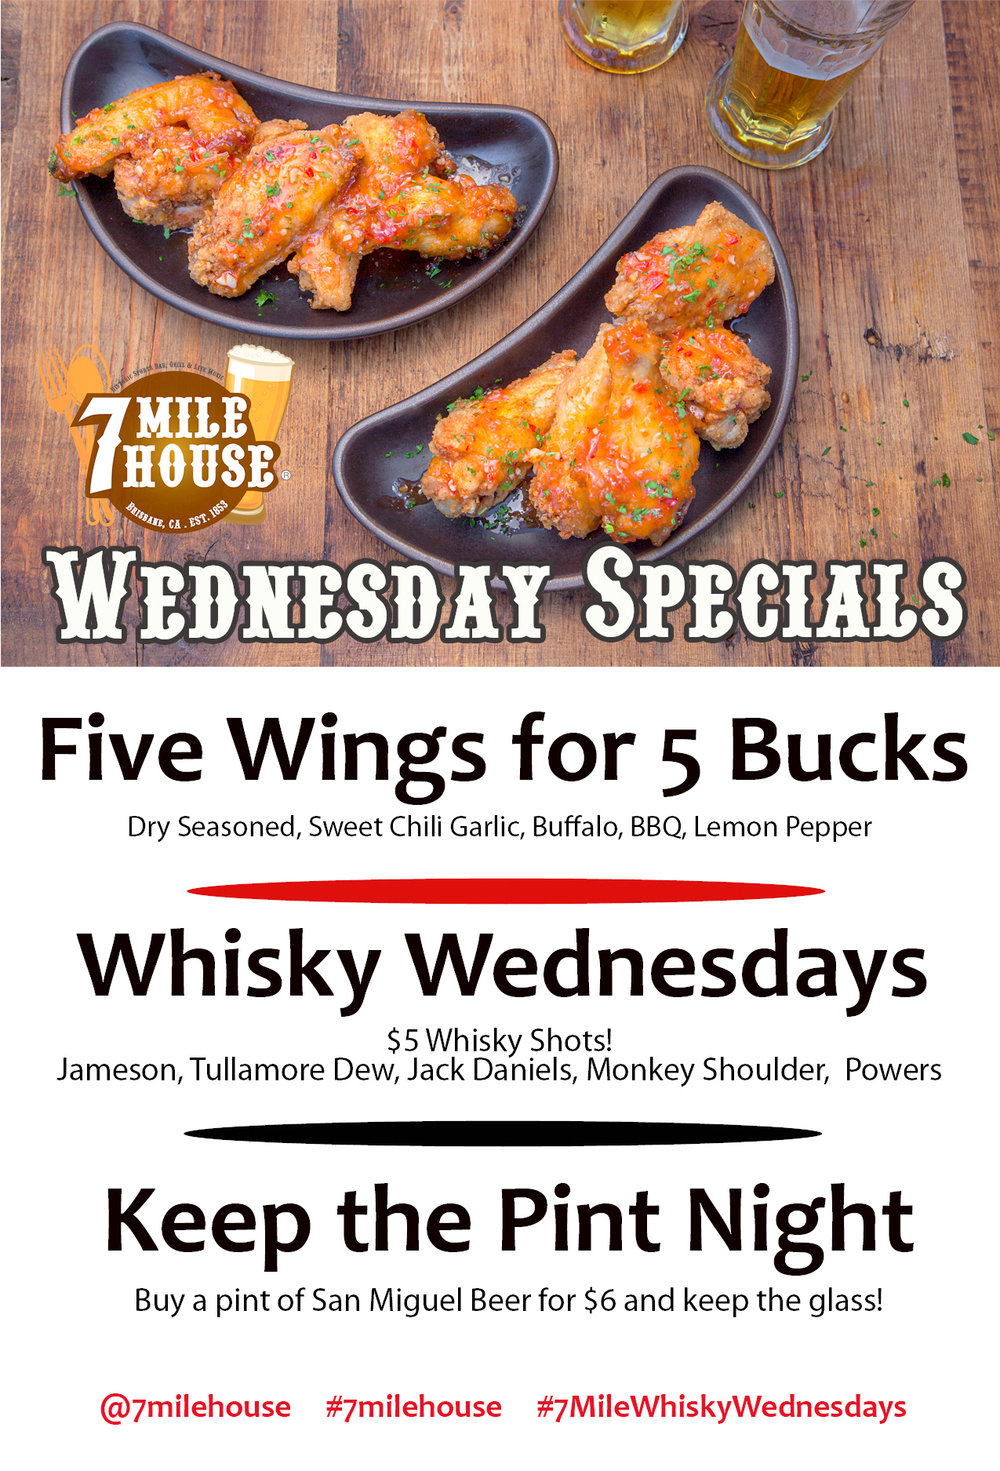 7 Mile House Whiskey and Wings Wednesday